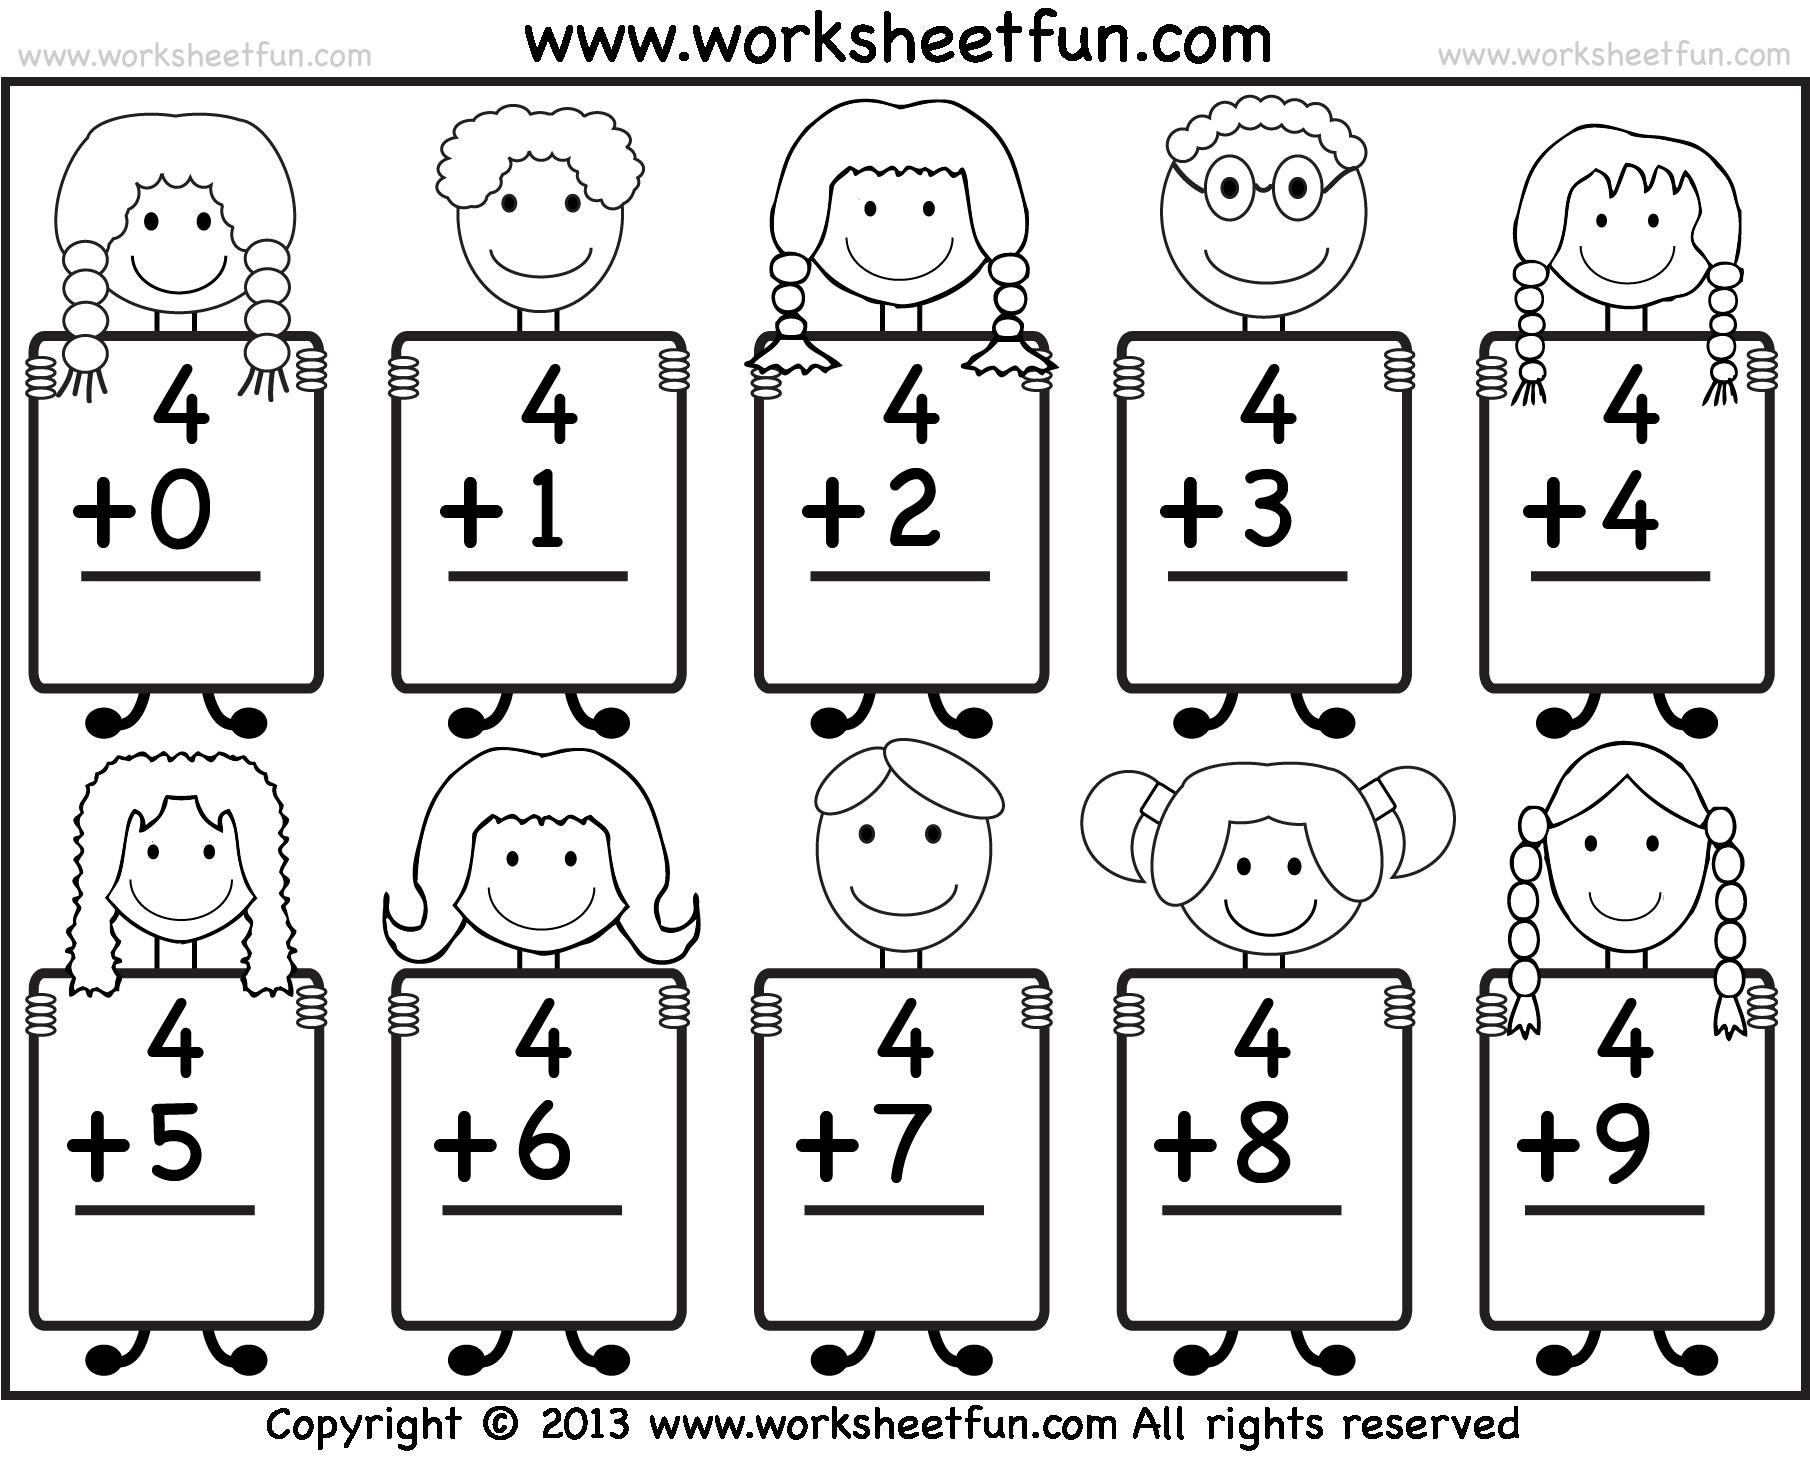 Worksheets Printable Math Worksheets free printable math worksheets for kindergarten addition 1 png 1